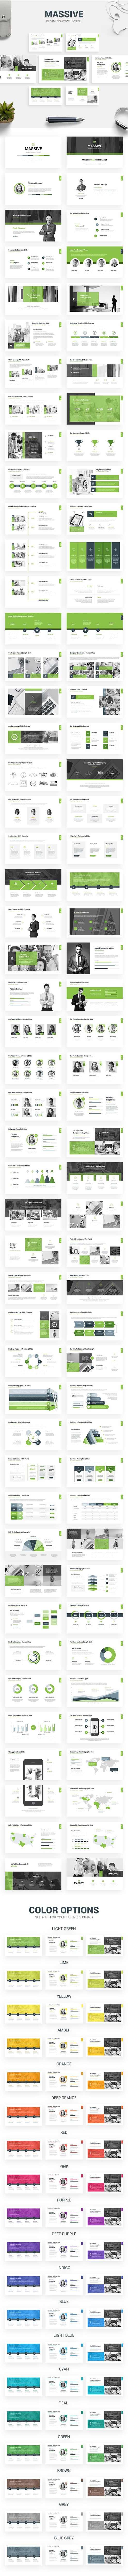 Massive Business Presentation Template  Powerpoint Ppt